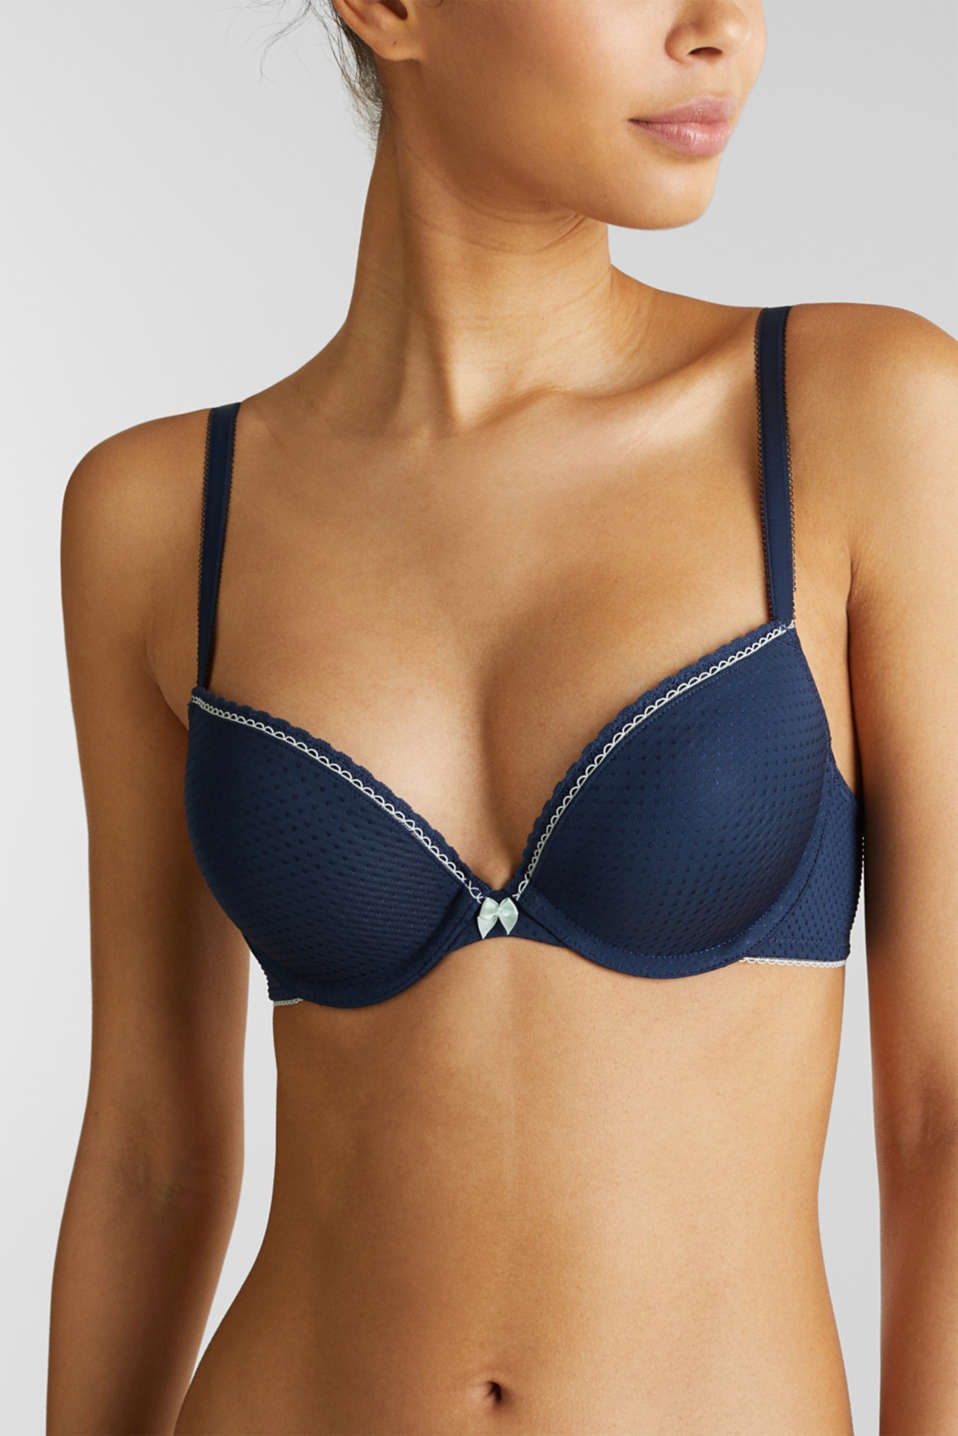 Padded push-up bra with a jacquard pattern, NAVY 2, detail image number 3